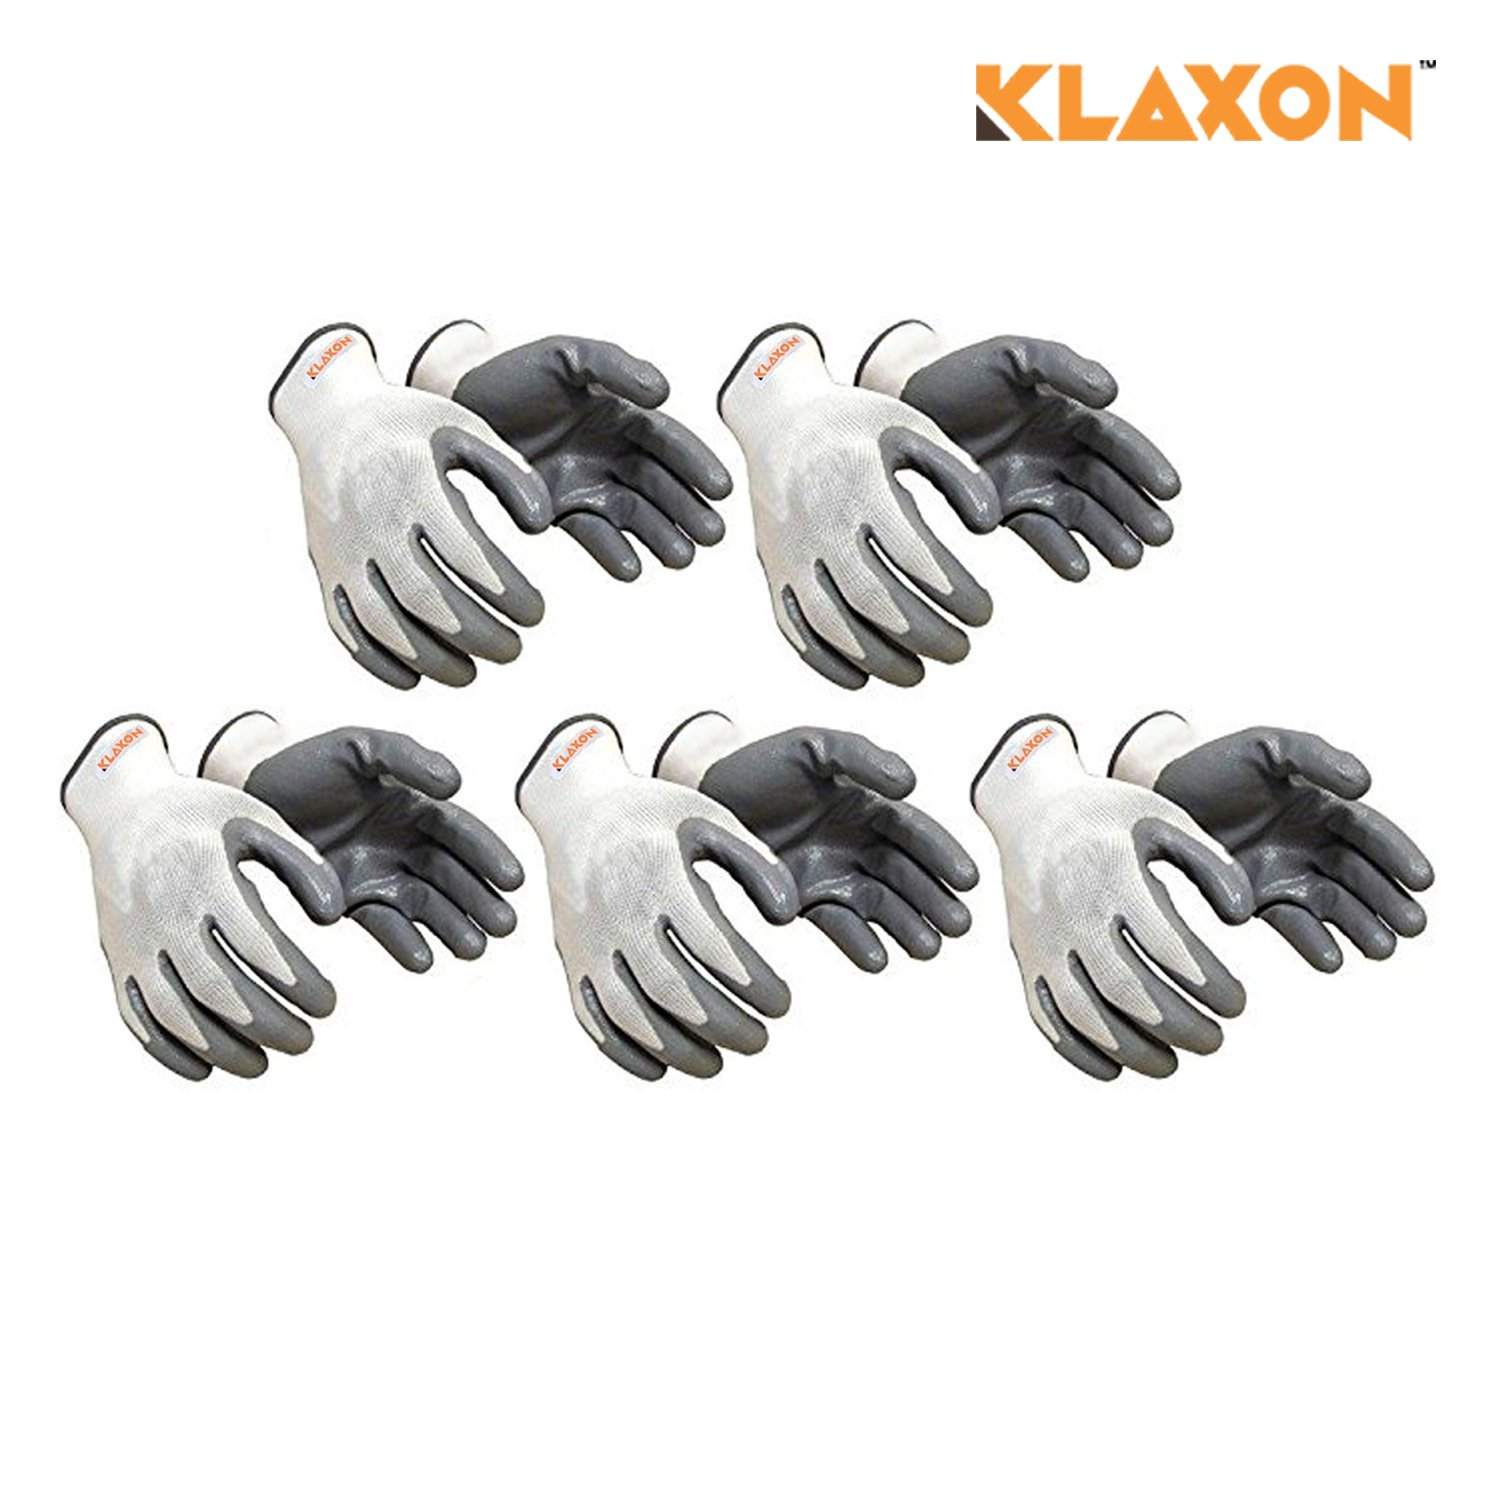 Klaxon Nylon Safety Hand Gloves (Pair 5) …